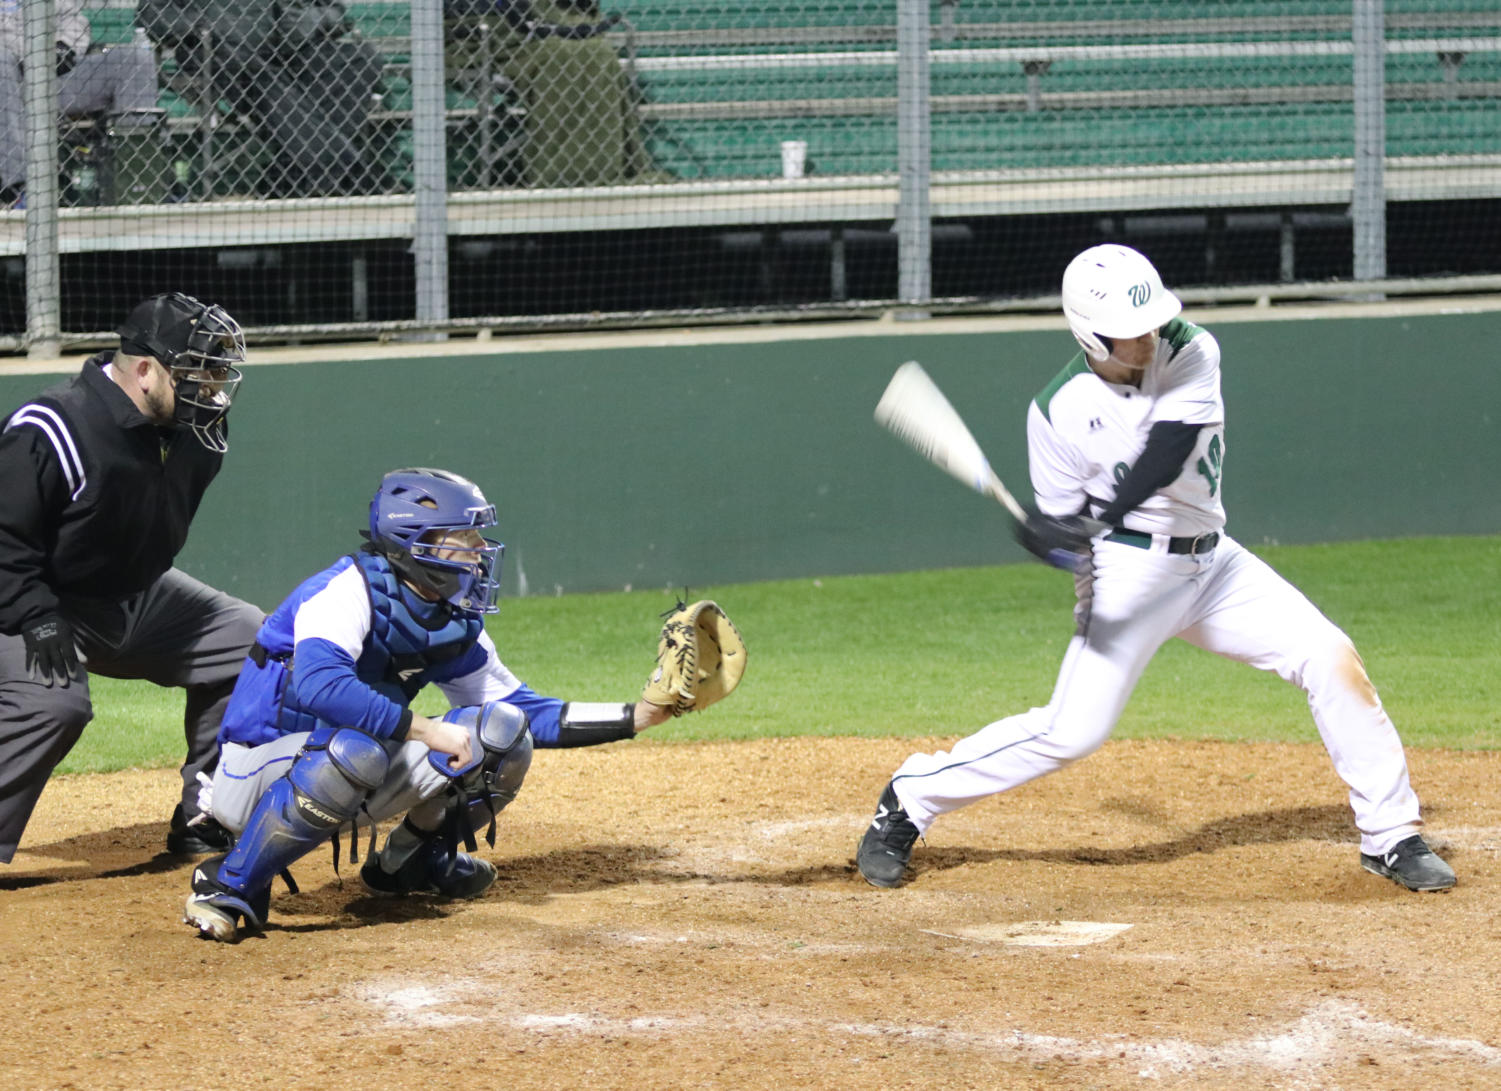 Jordan Fay takes a swing in the Indians' loss to Bryant (AR) High School.